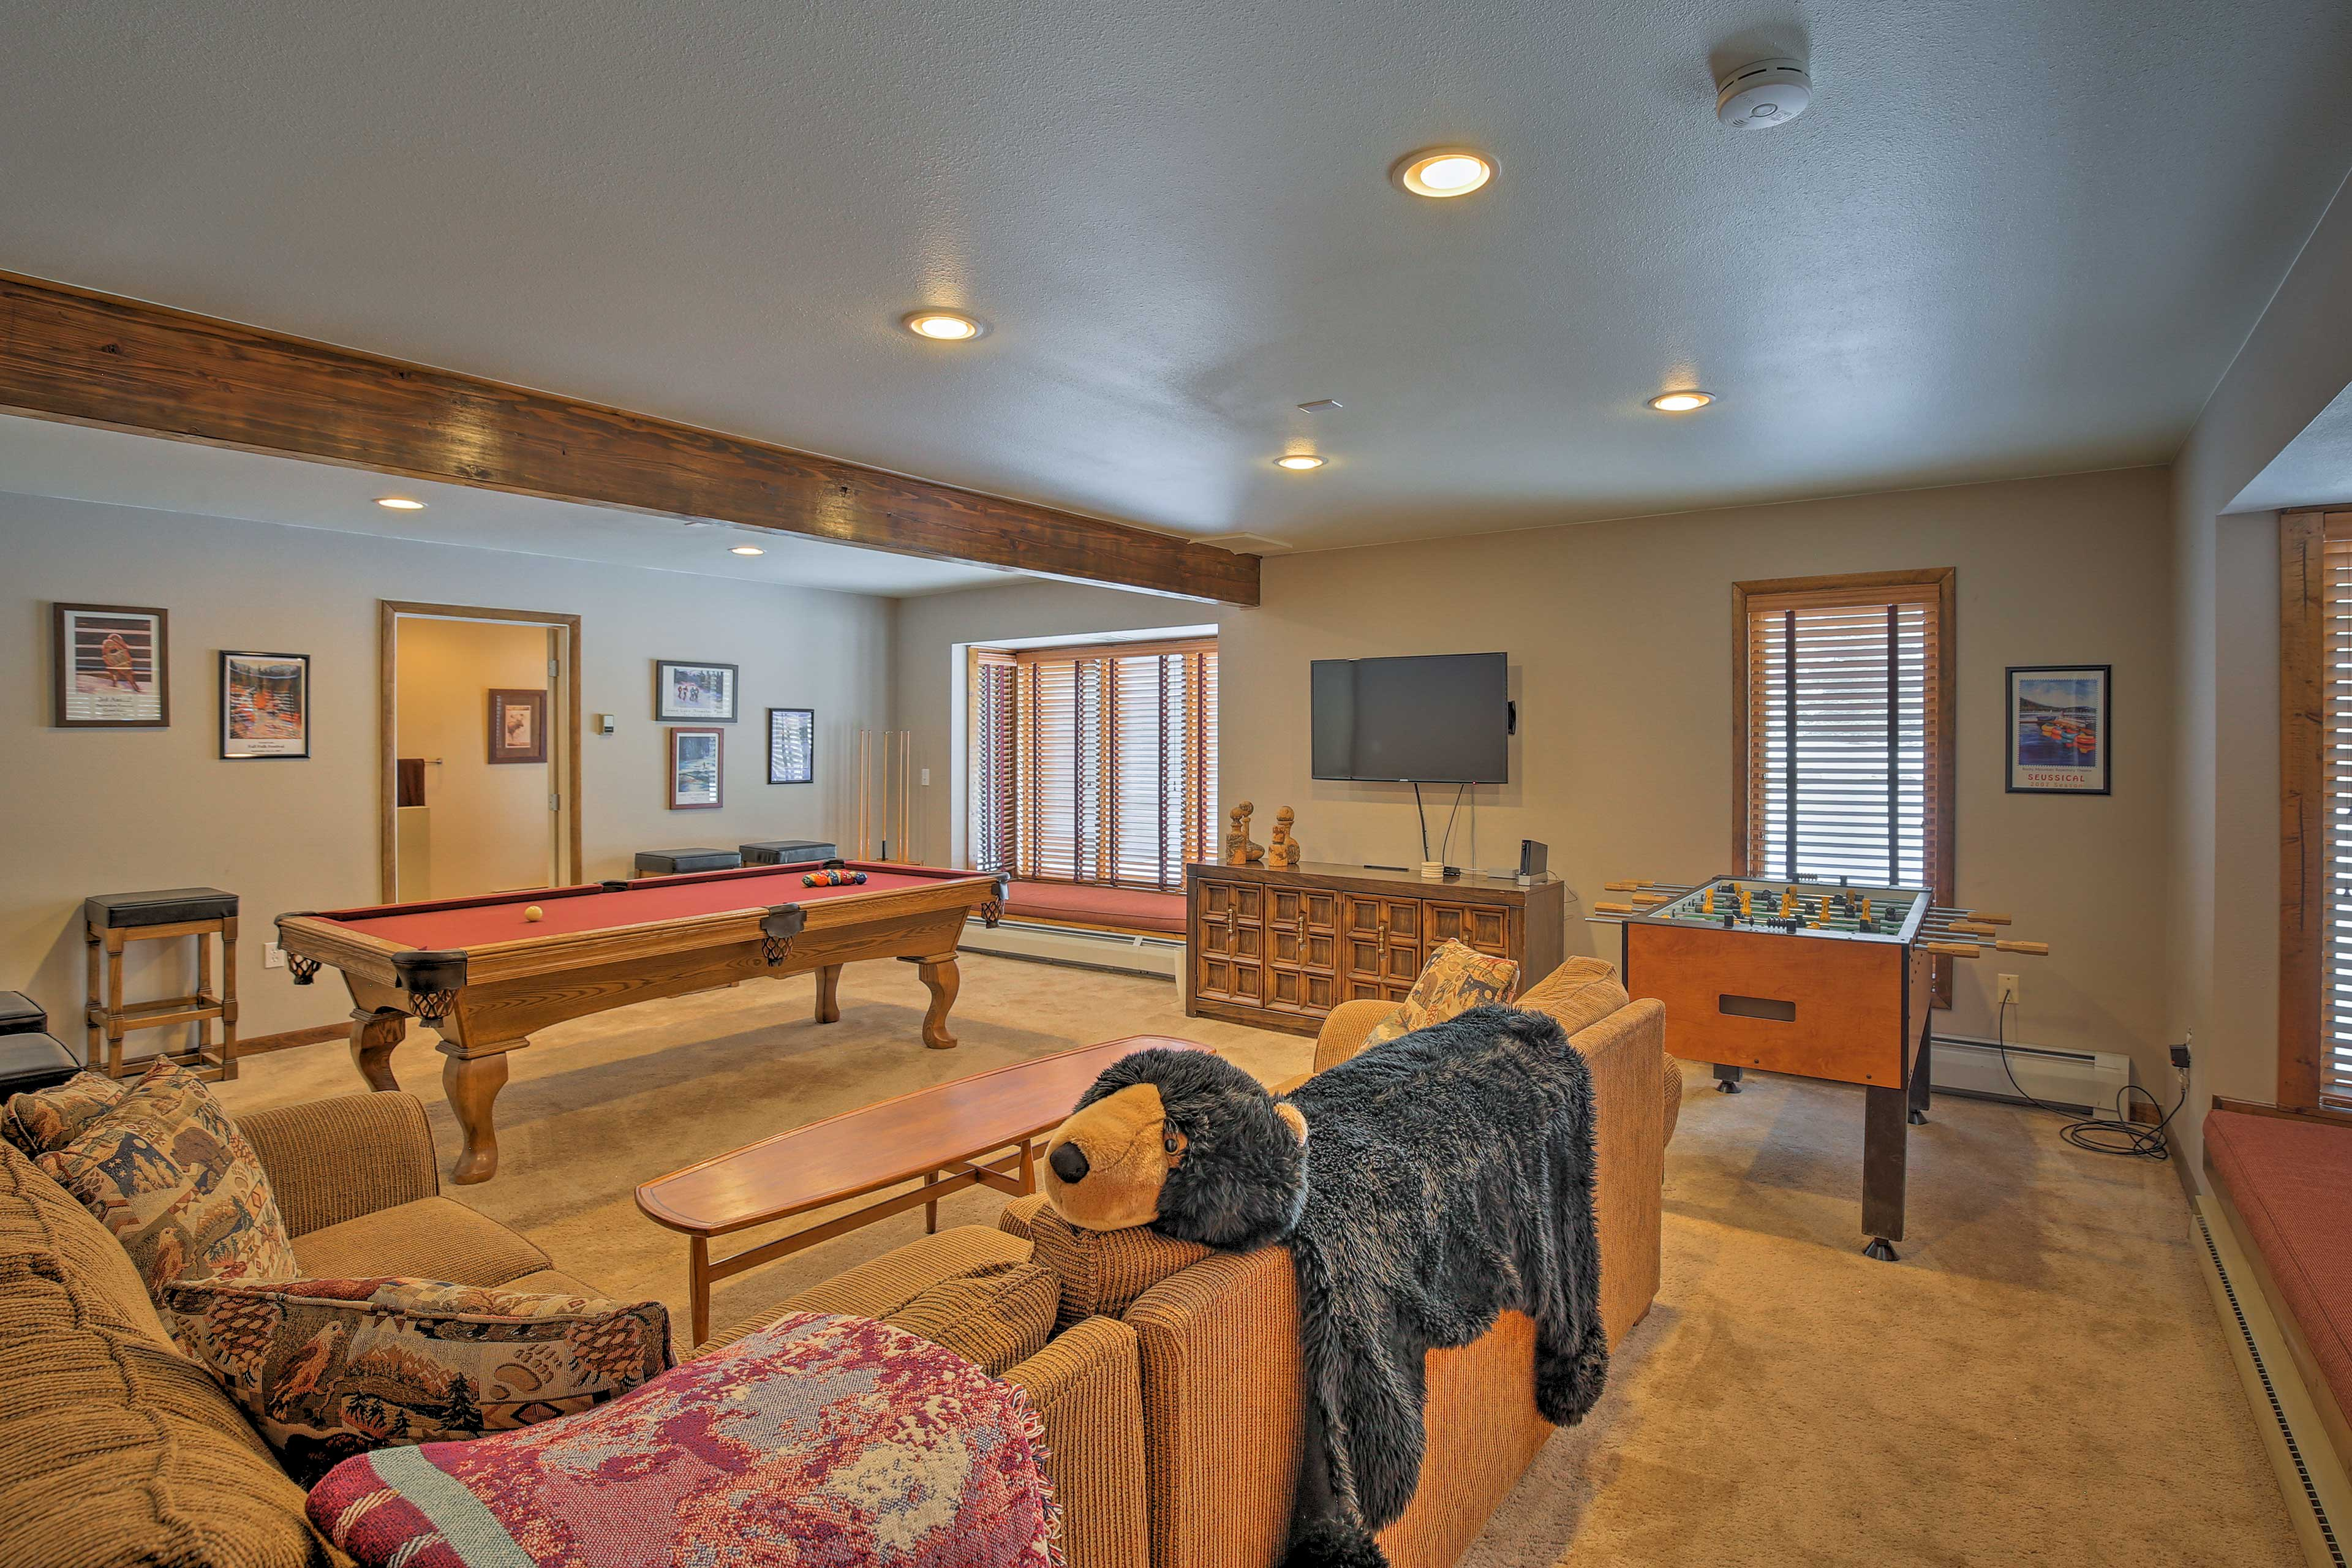 Practice your trick shot on the pool table or play a game of foosball.